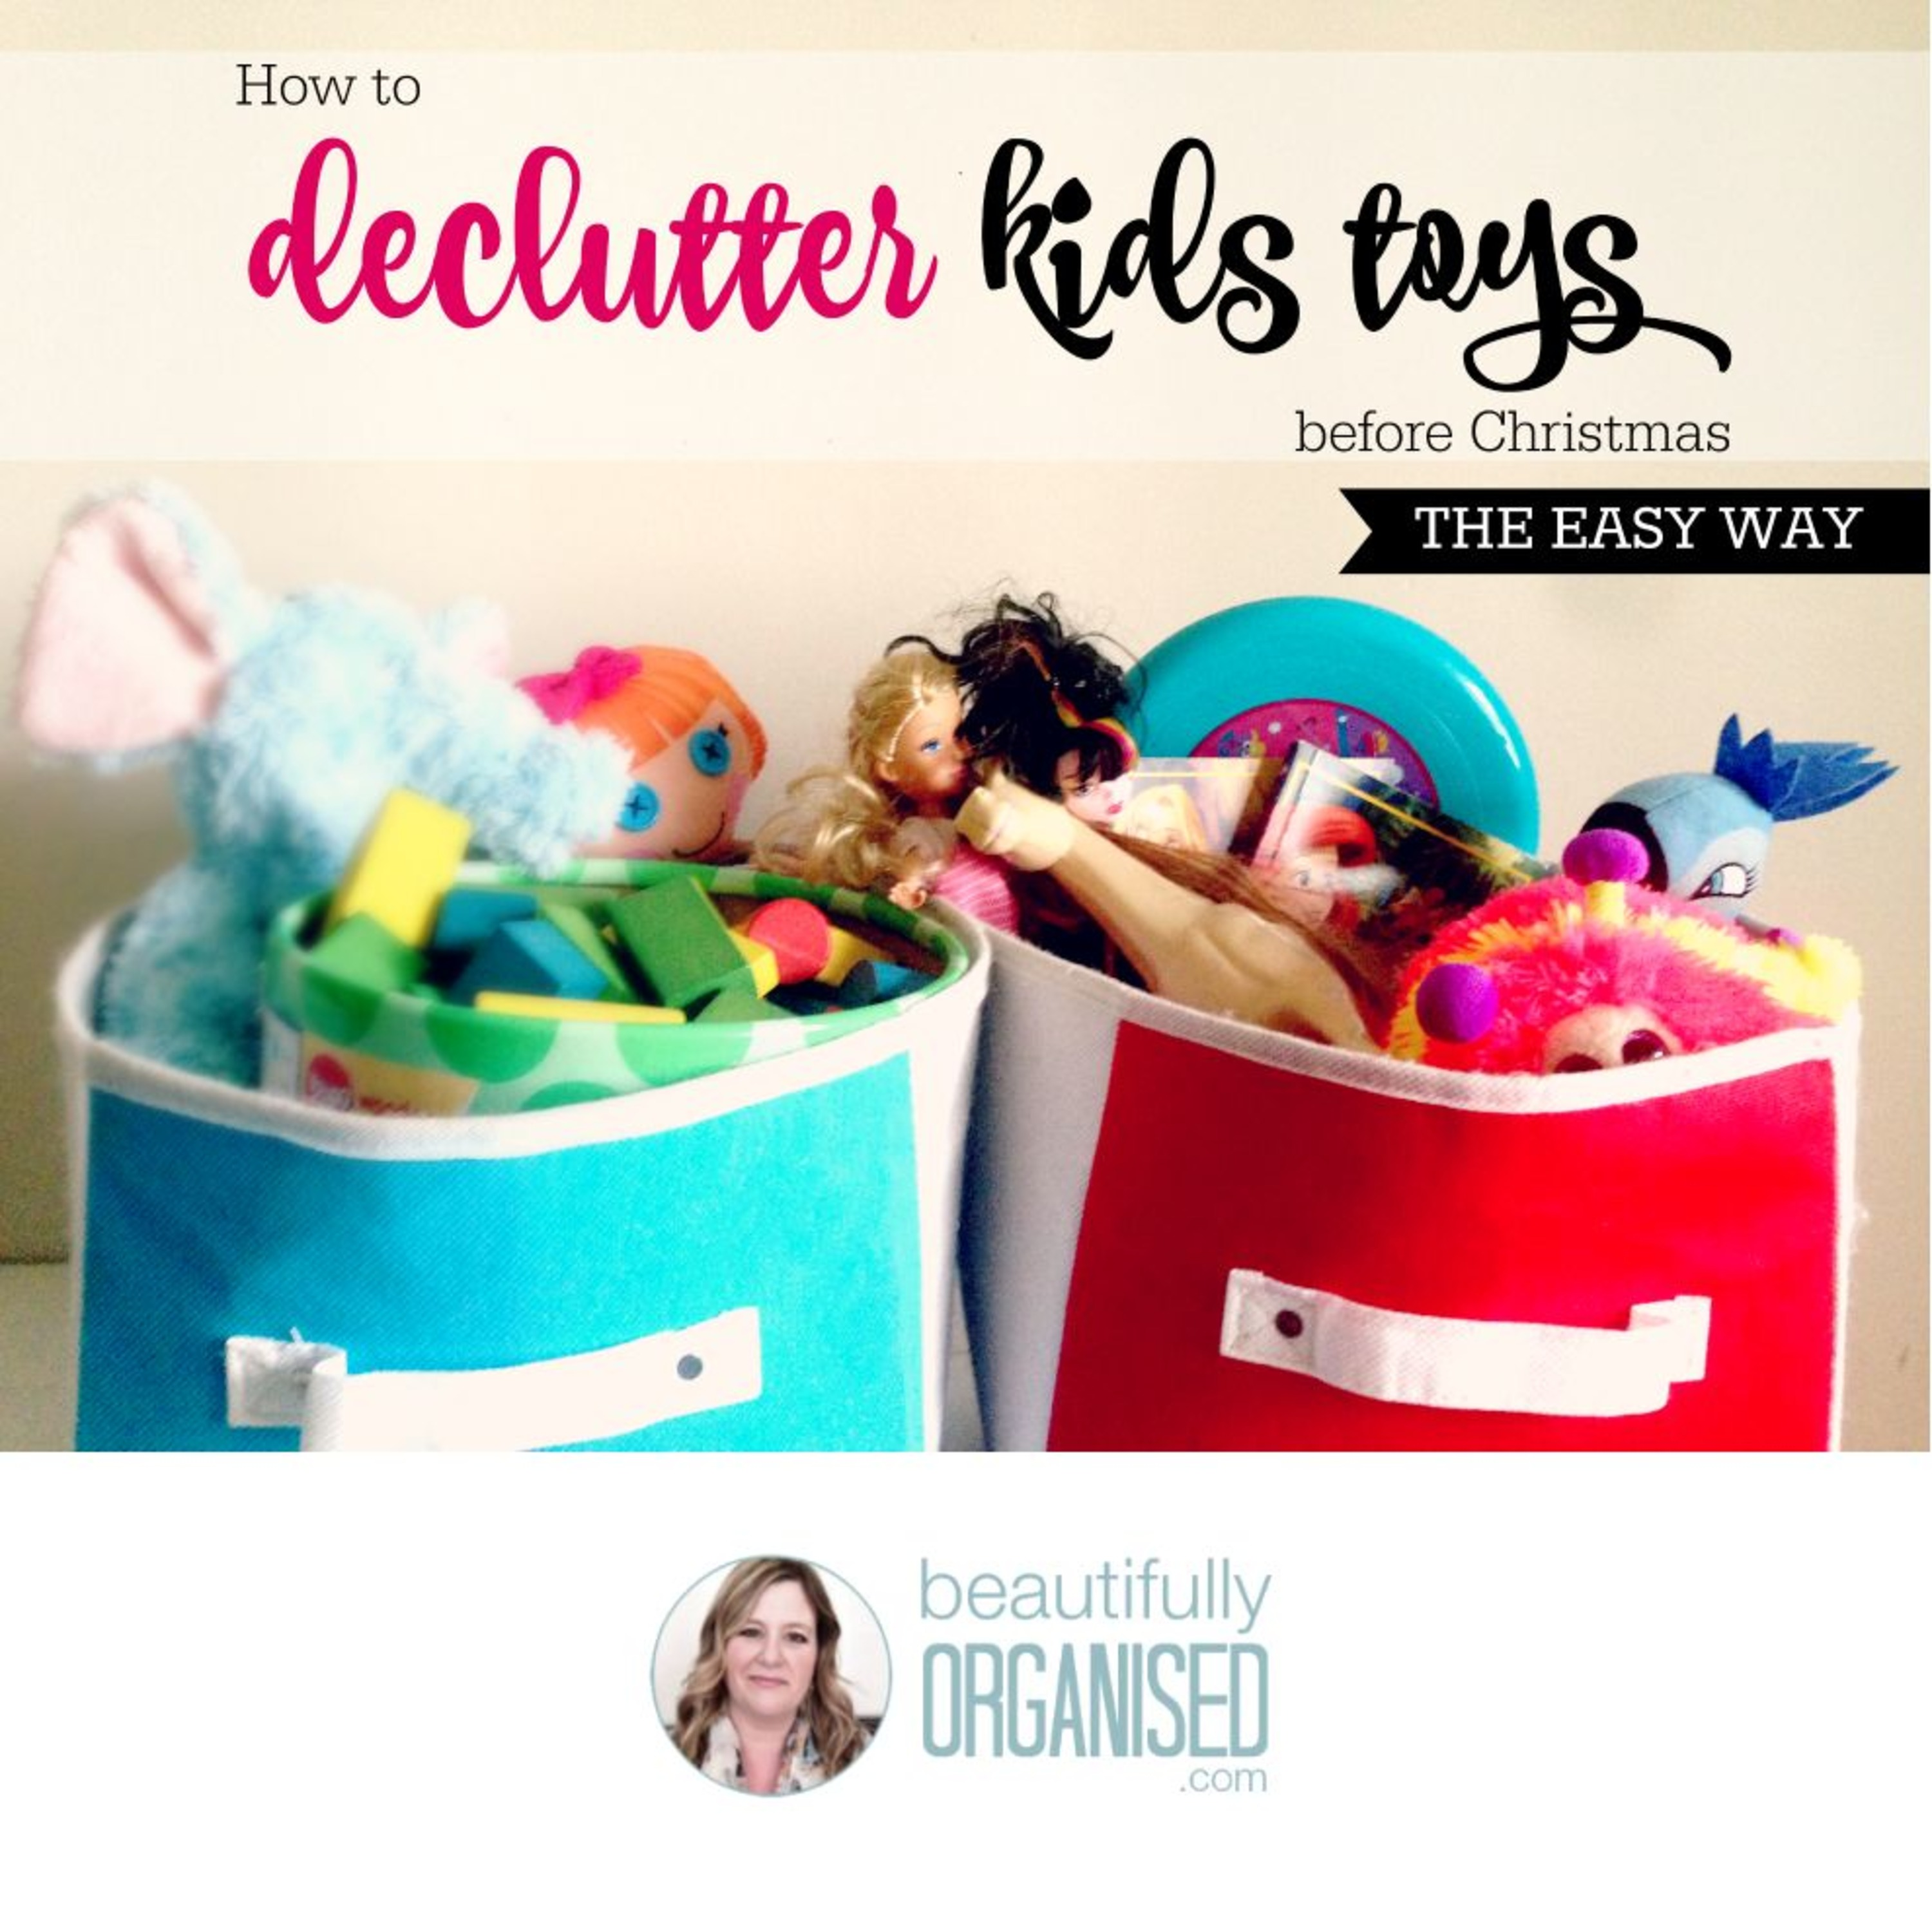 How To Declutter Your Kids Toys Before Christmas